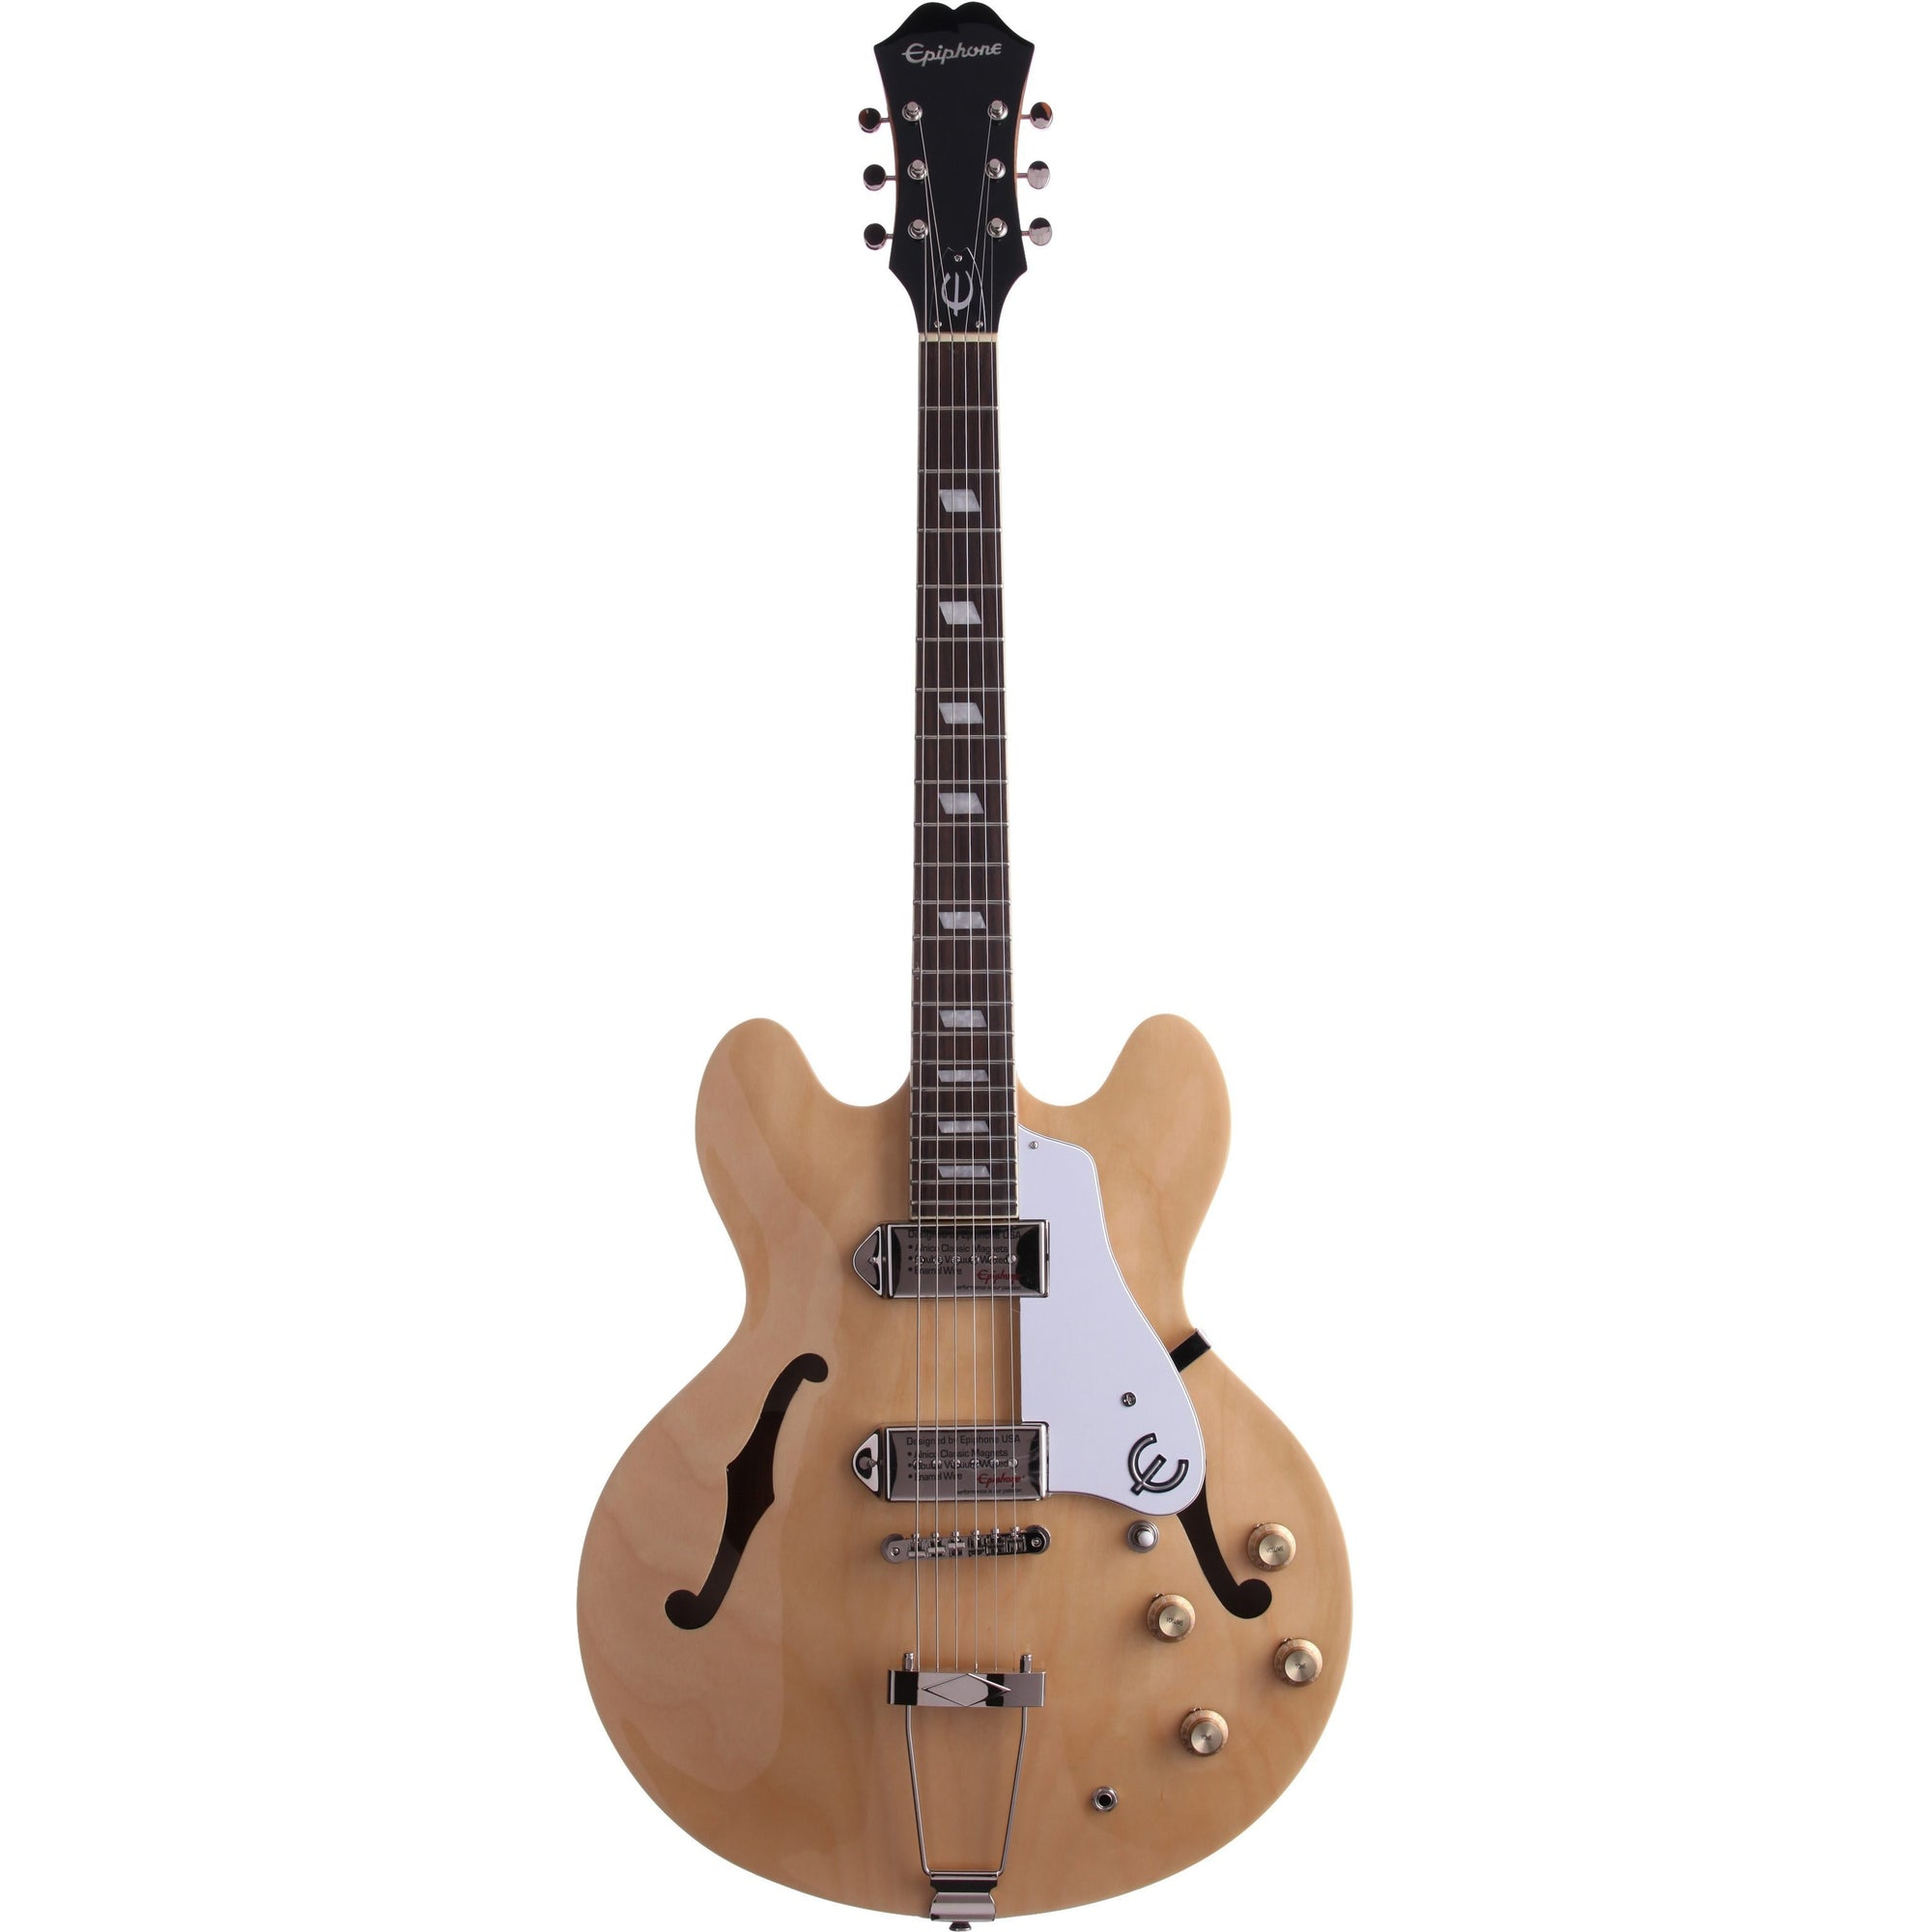 Epiphone Casino Archtop Electric Guitar, Natural